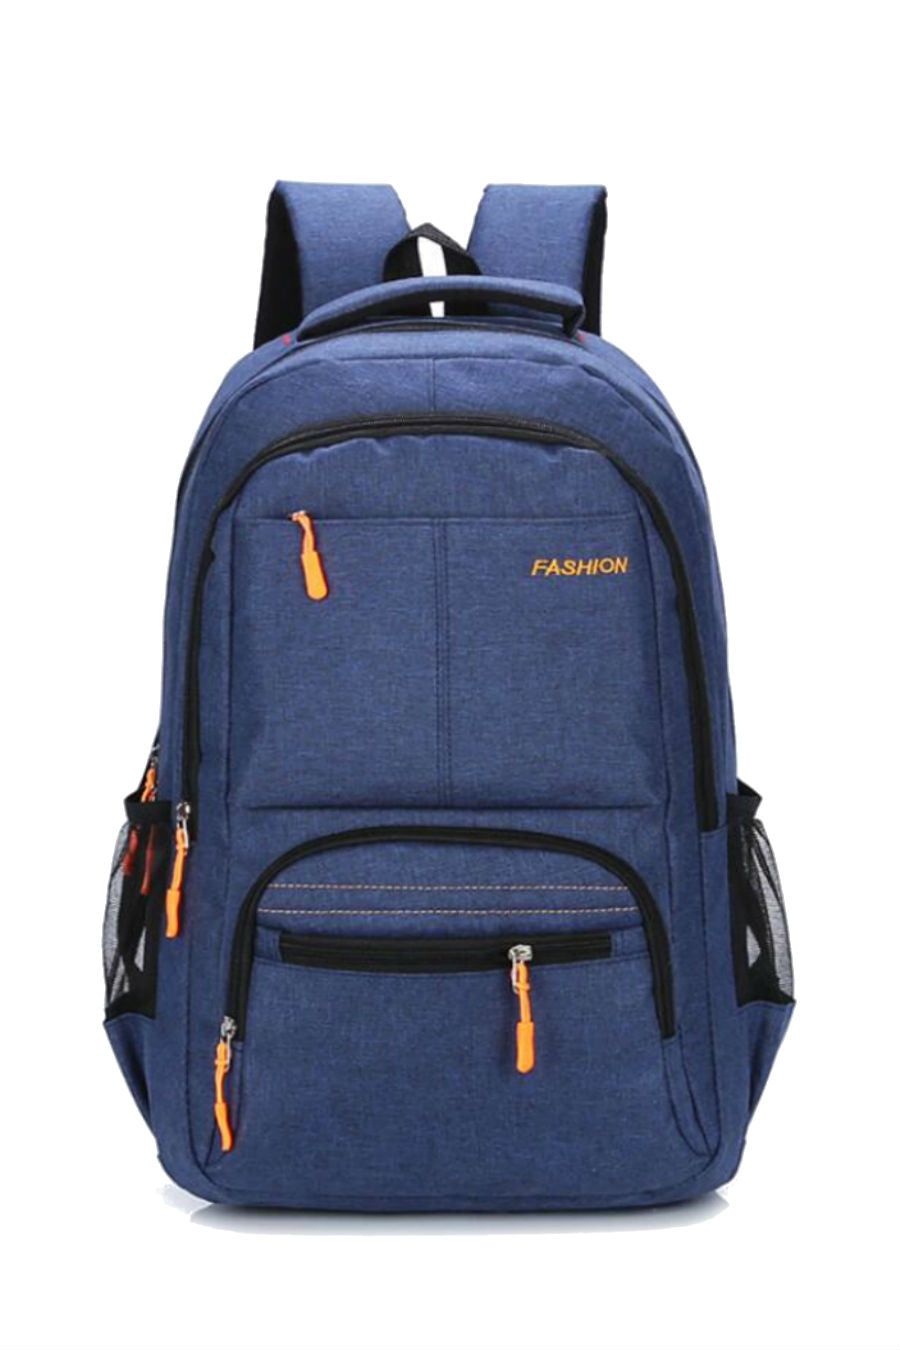 Fashion Minimal Blue Backpack